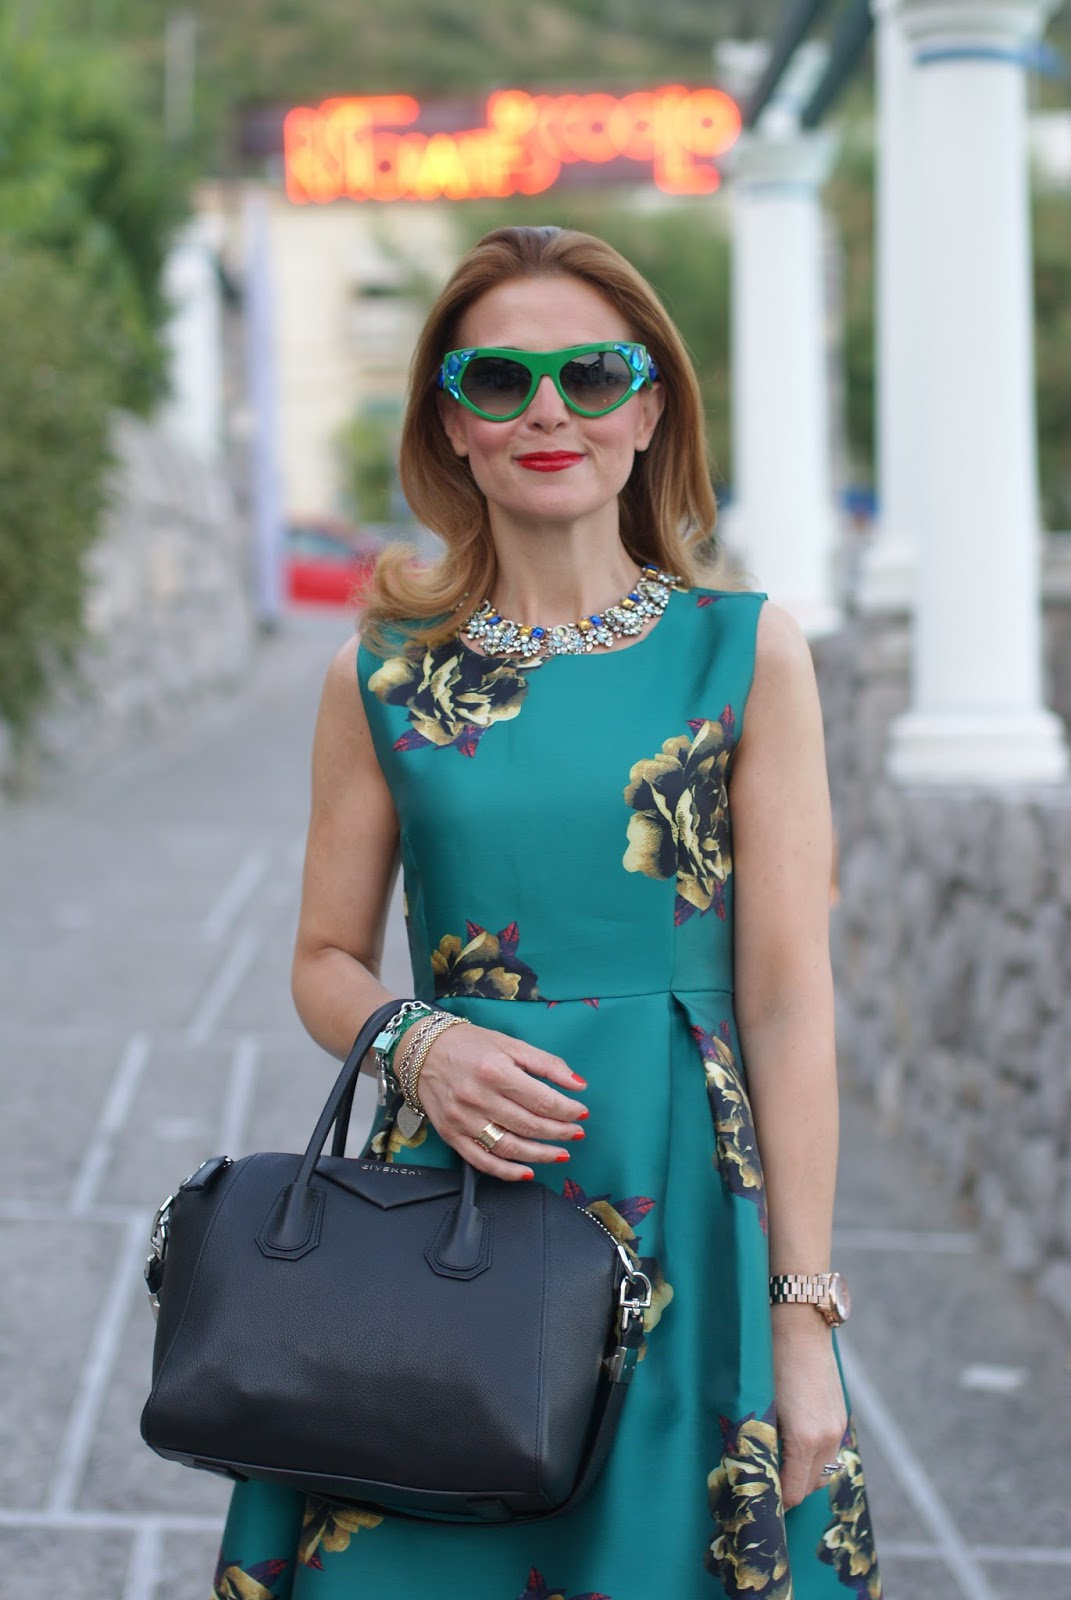 Choies green midi dress and Prada occhiali da sole, Prada Voice sunglasses found on Giarre on Fashion and Cookies fashion blog, fashion blogger style